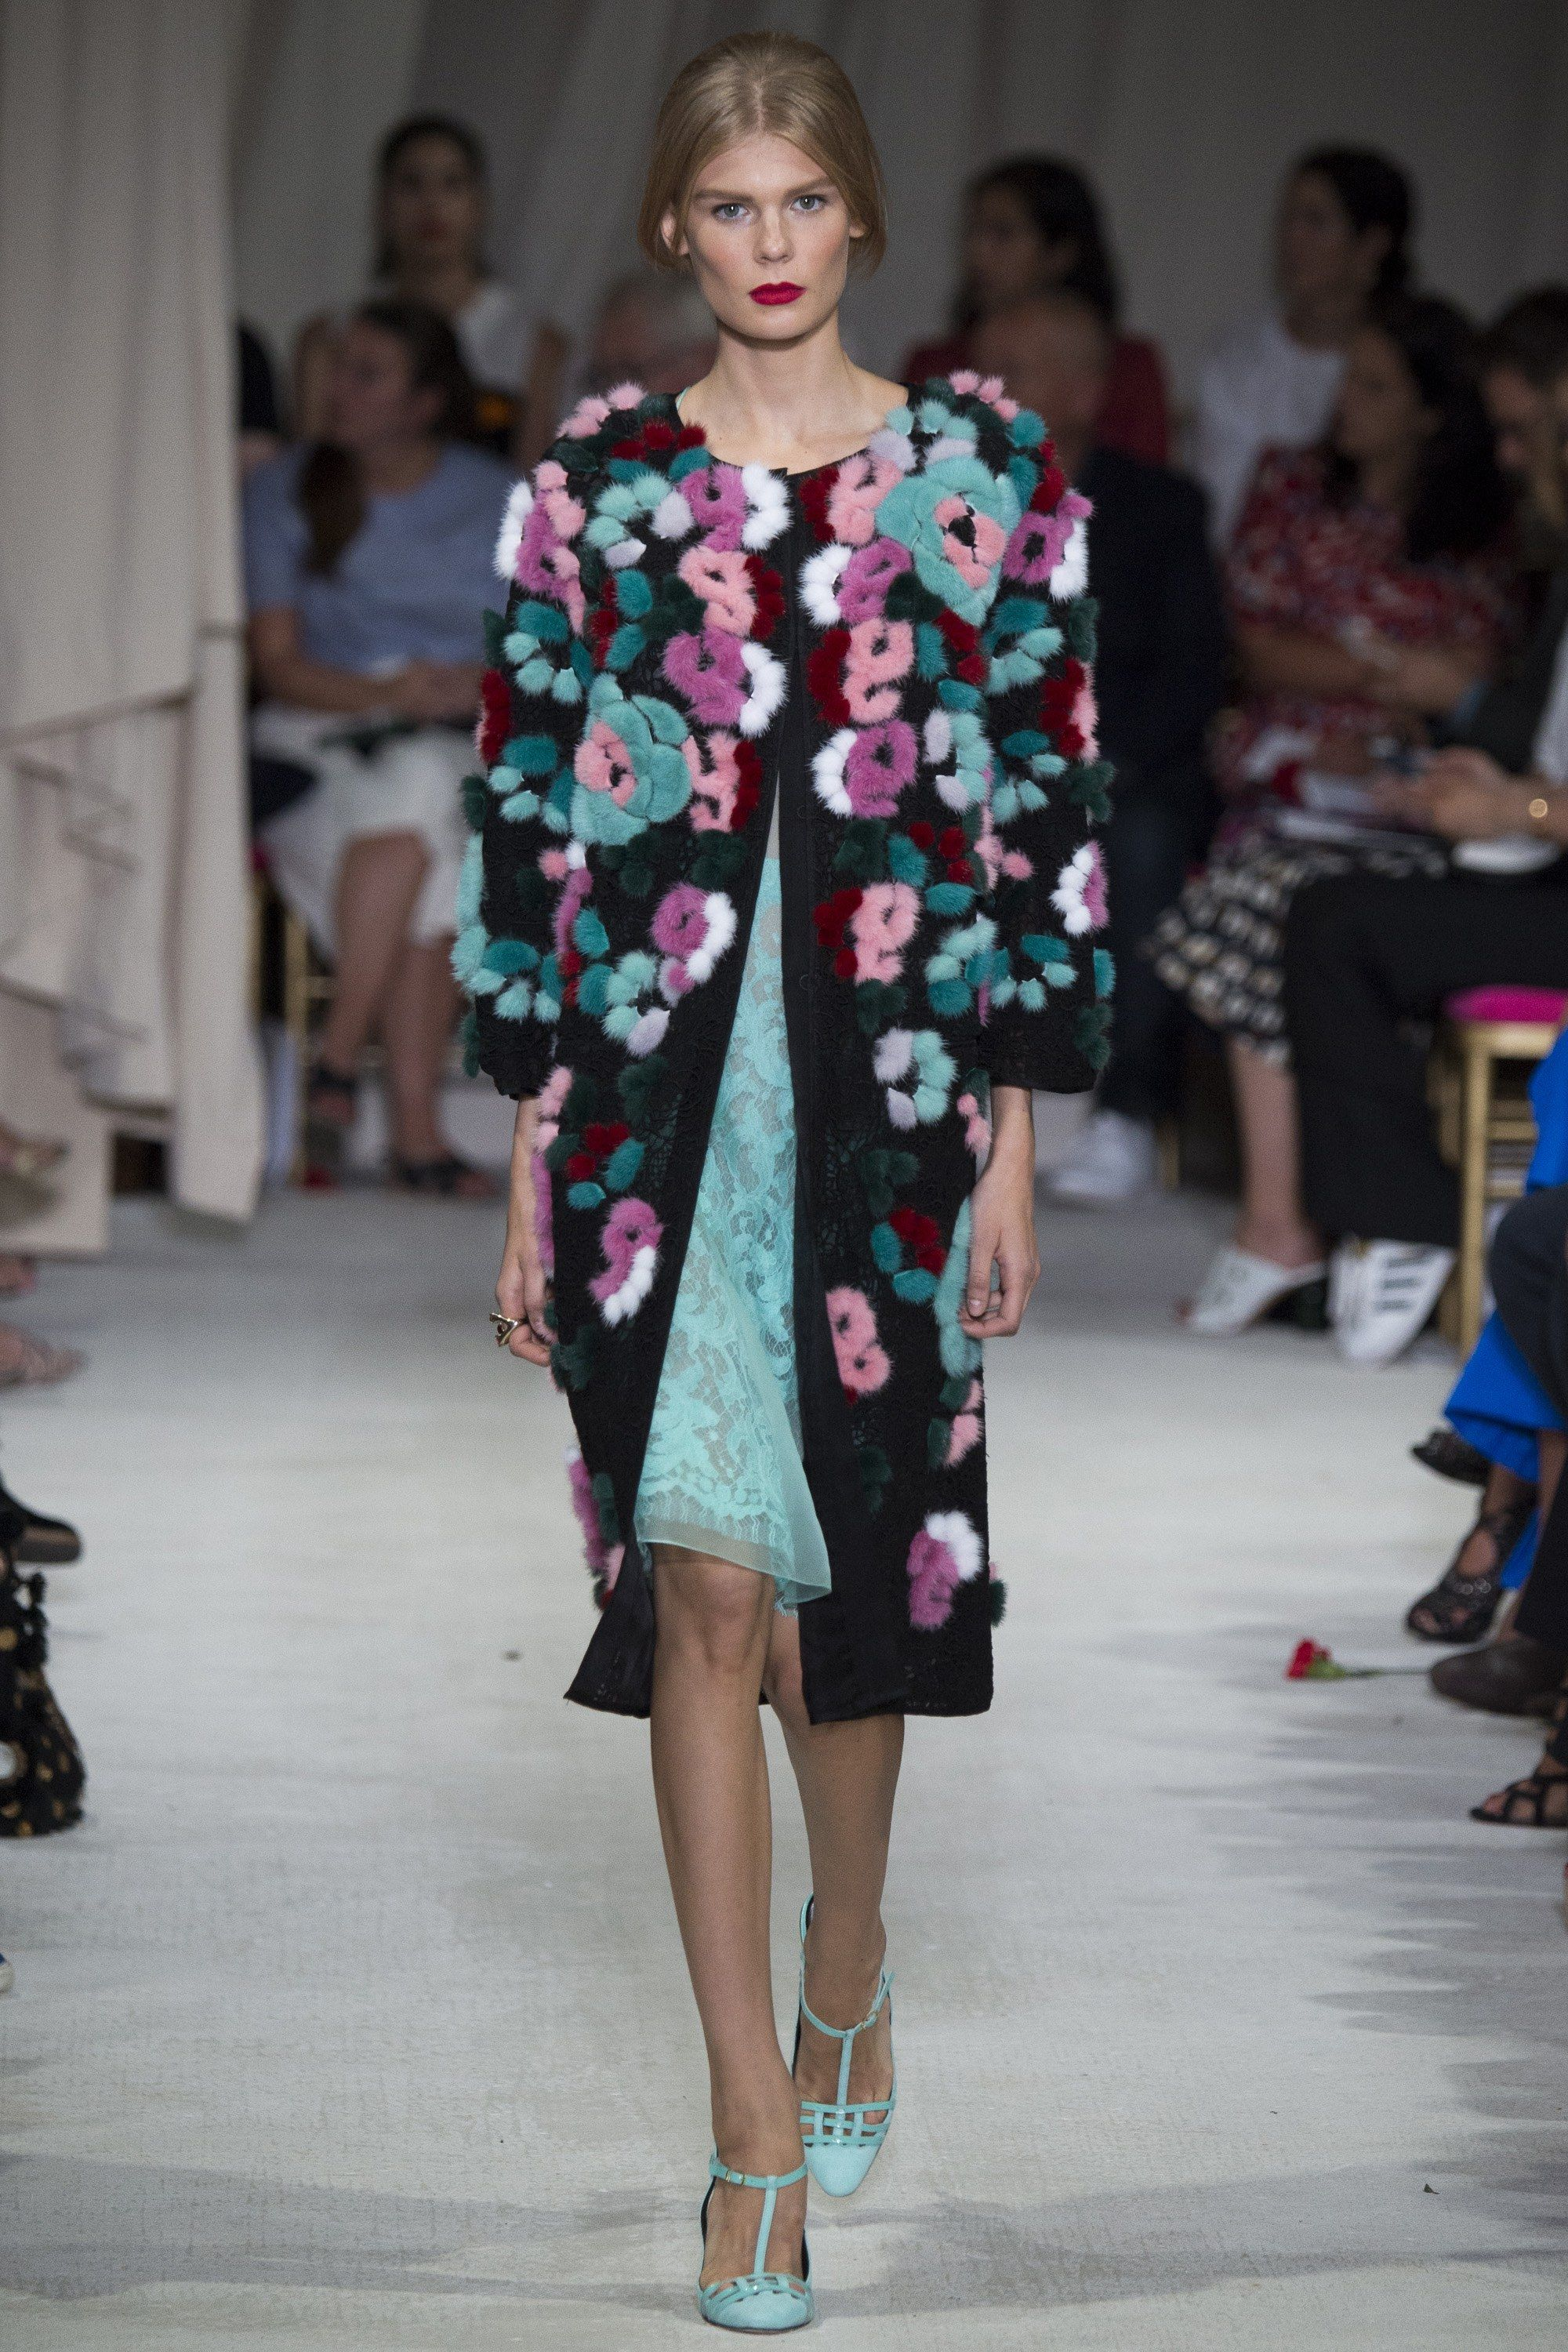 Oscar de la Renta Spring 2016 Ready-to-Wear Fashion Show - Alexandra Elizabeth